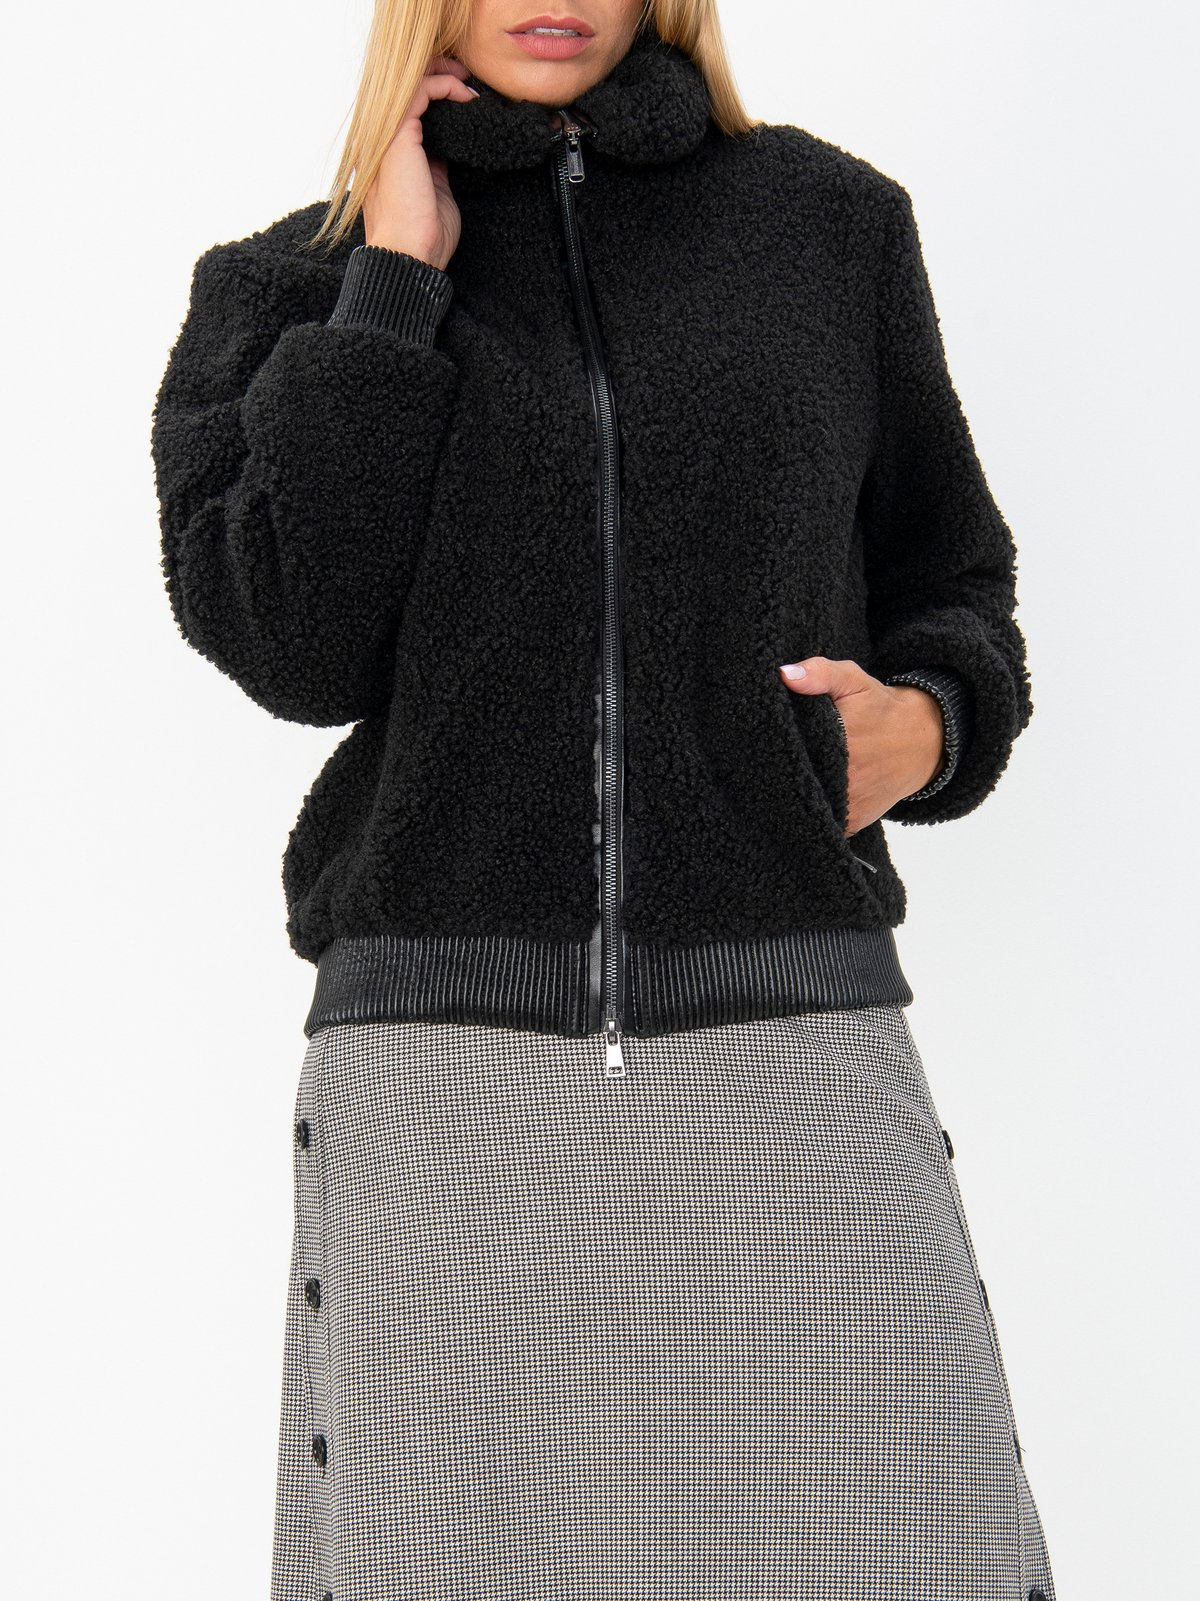 cheaper running shoes new york Women's short coat Bomboogie| Soulz.lt